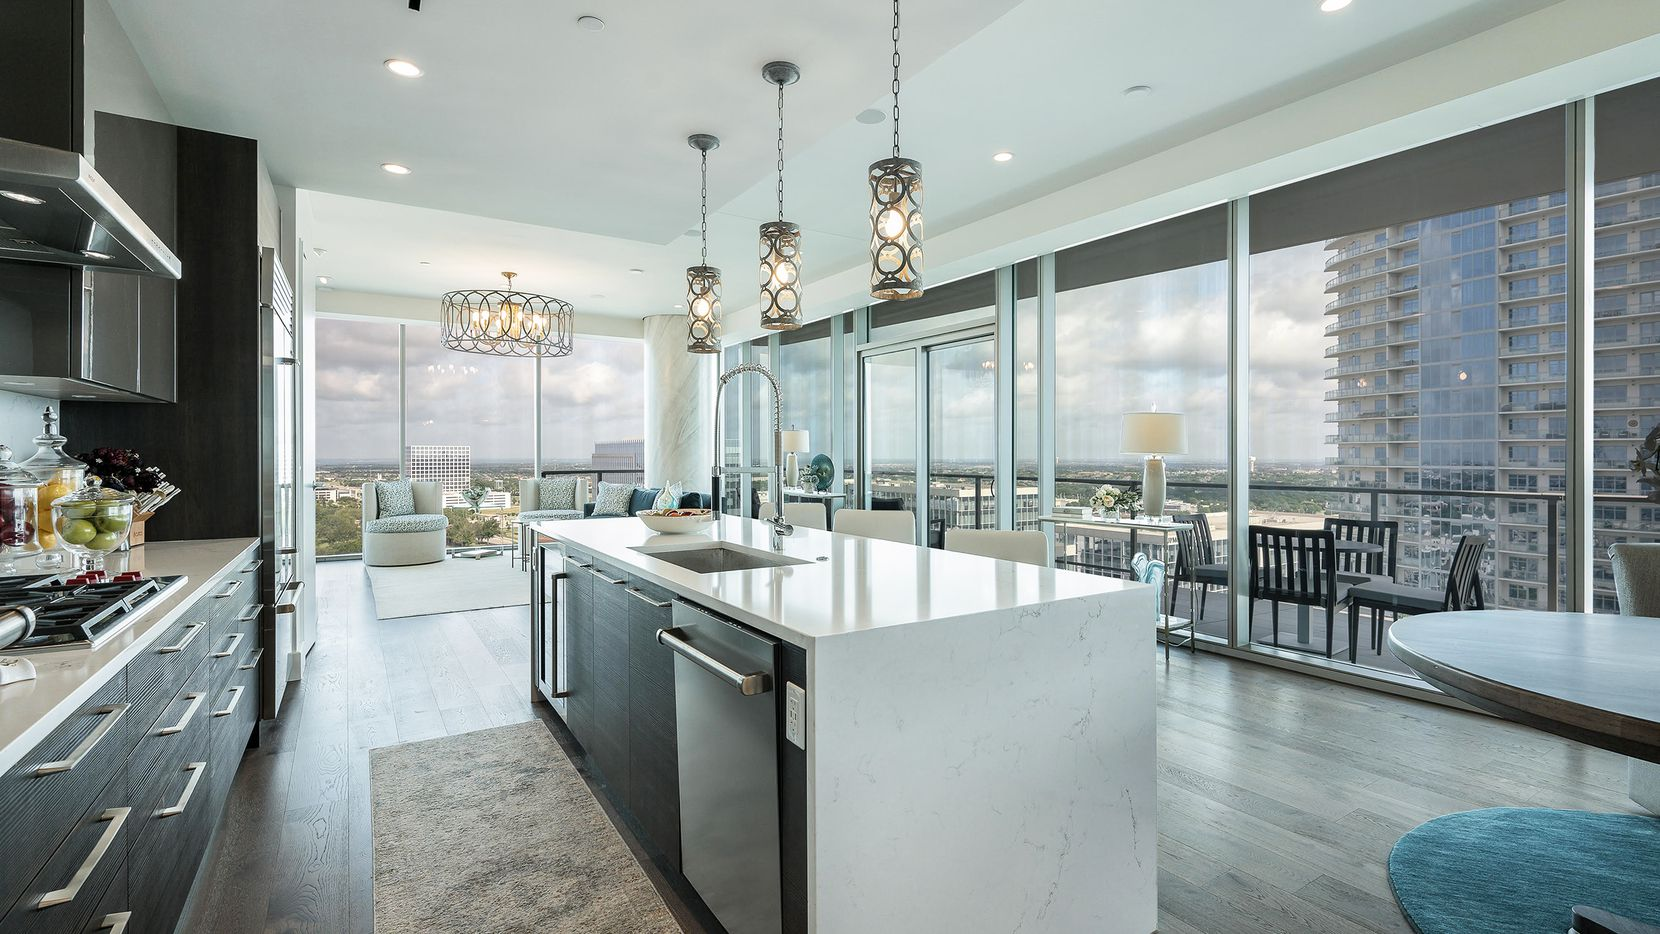 This 15th-floor unit at Windrose Tower at Legacy West is listed for $2.1 million.